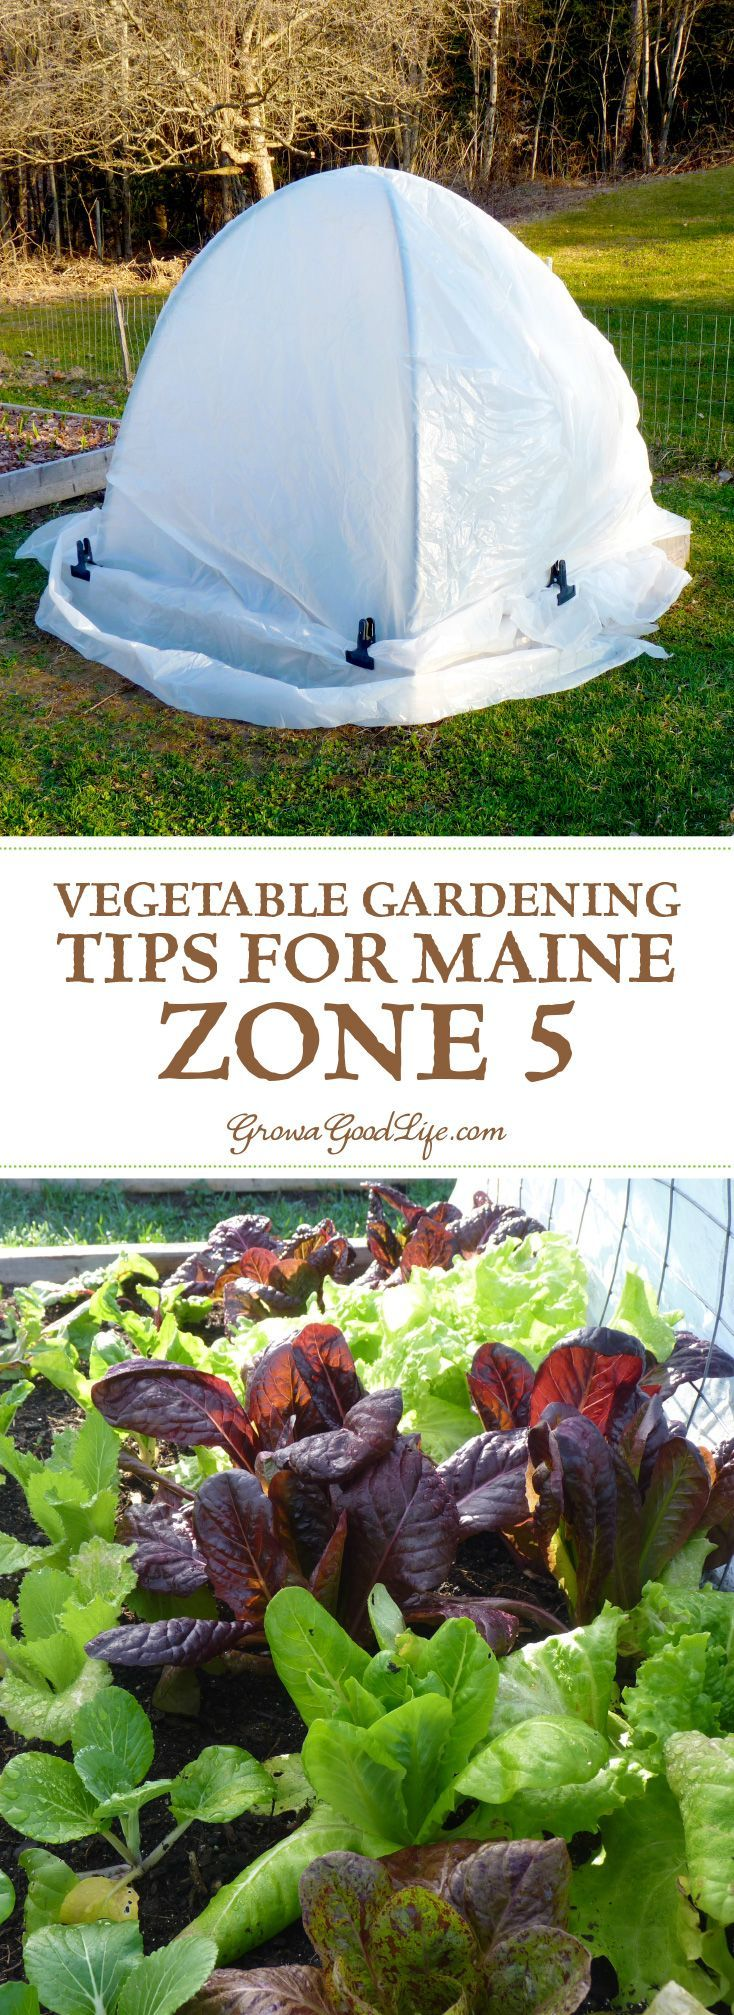 Even when faced with a short growing season, a lot can be harvested with some experimentation and careful planning. Make the most of your vegetable garden by exploring creative ways to extend the season, select crops with a short maturity date, and try to keep the beds producing by succession planting.